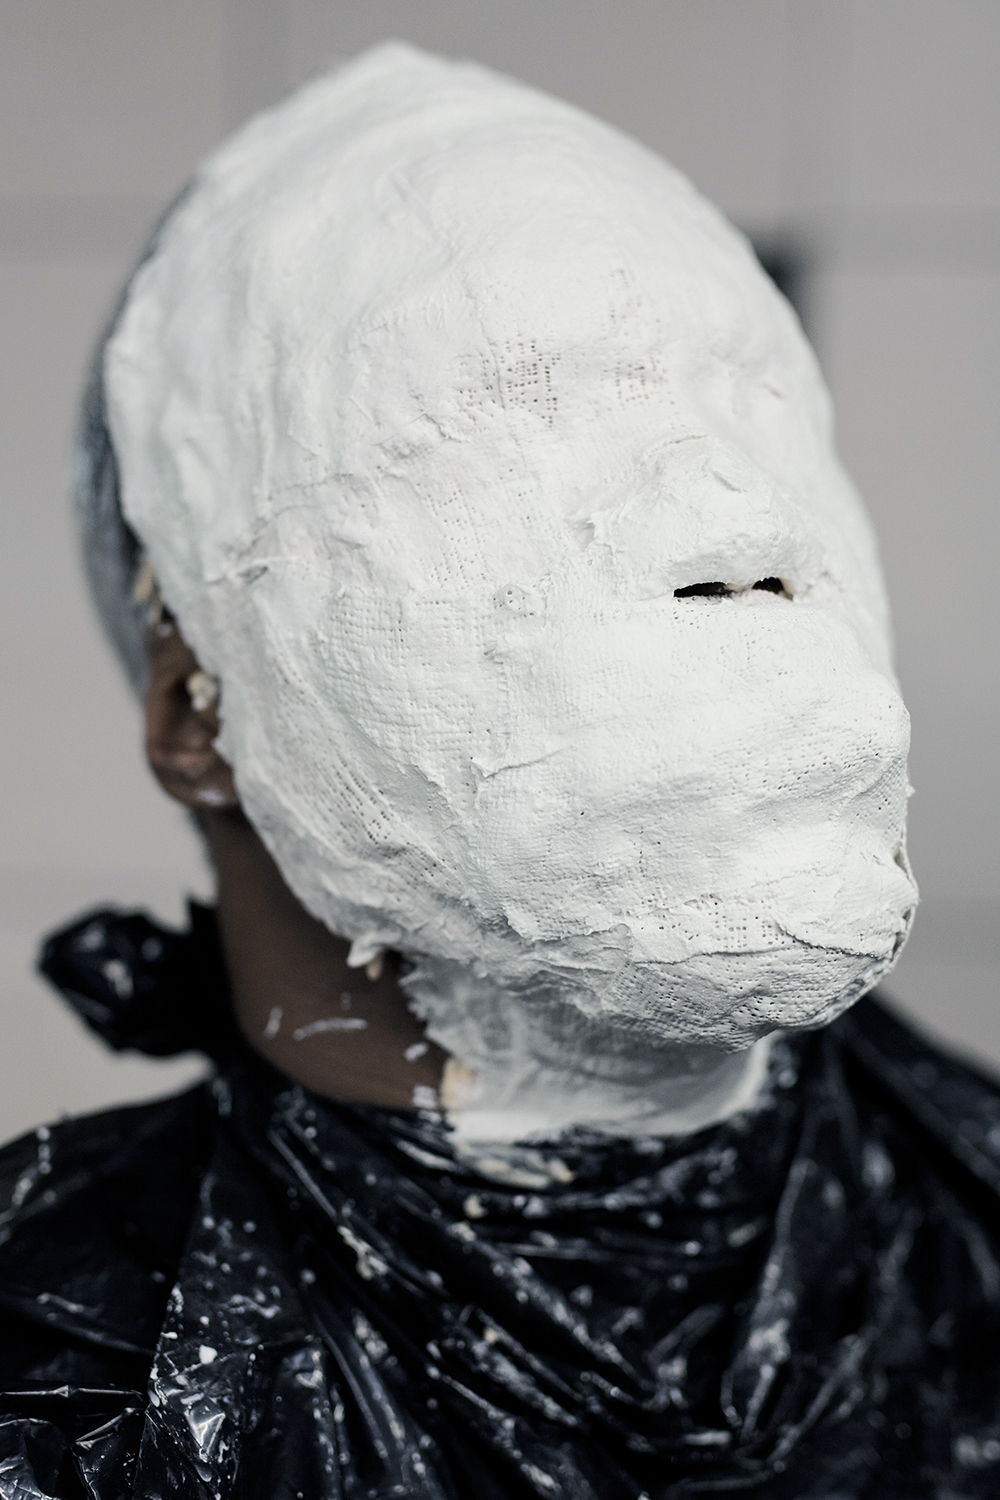 Clarence Houston from Detroit sits patiently as he waits for plaster strips to be applied to his face to make a mold during the face casting demonstration on Saturday, Jan. 30, 2016 at the Red Bull House of Art in Detroit. Tim Galloway/Special to DFP